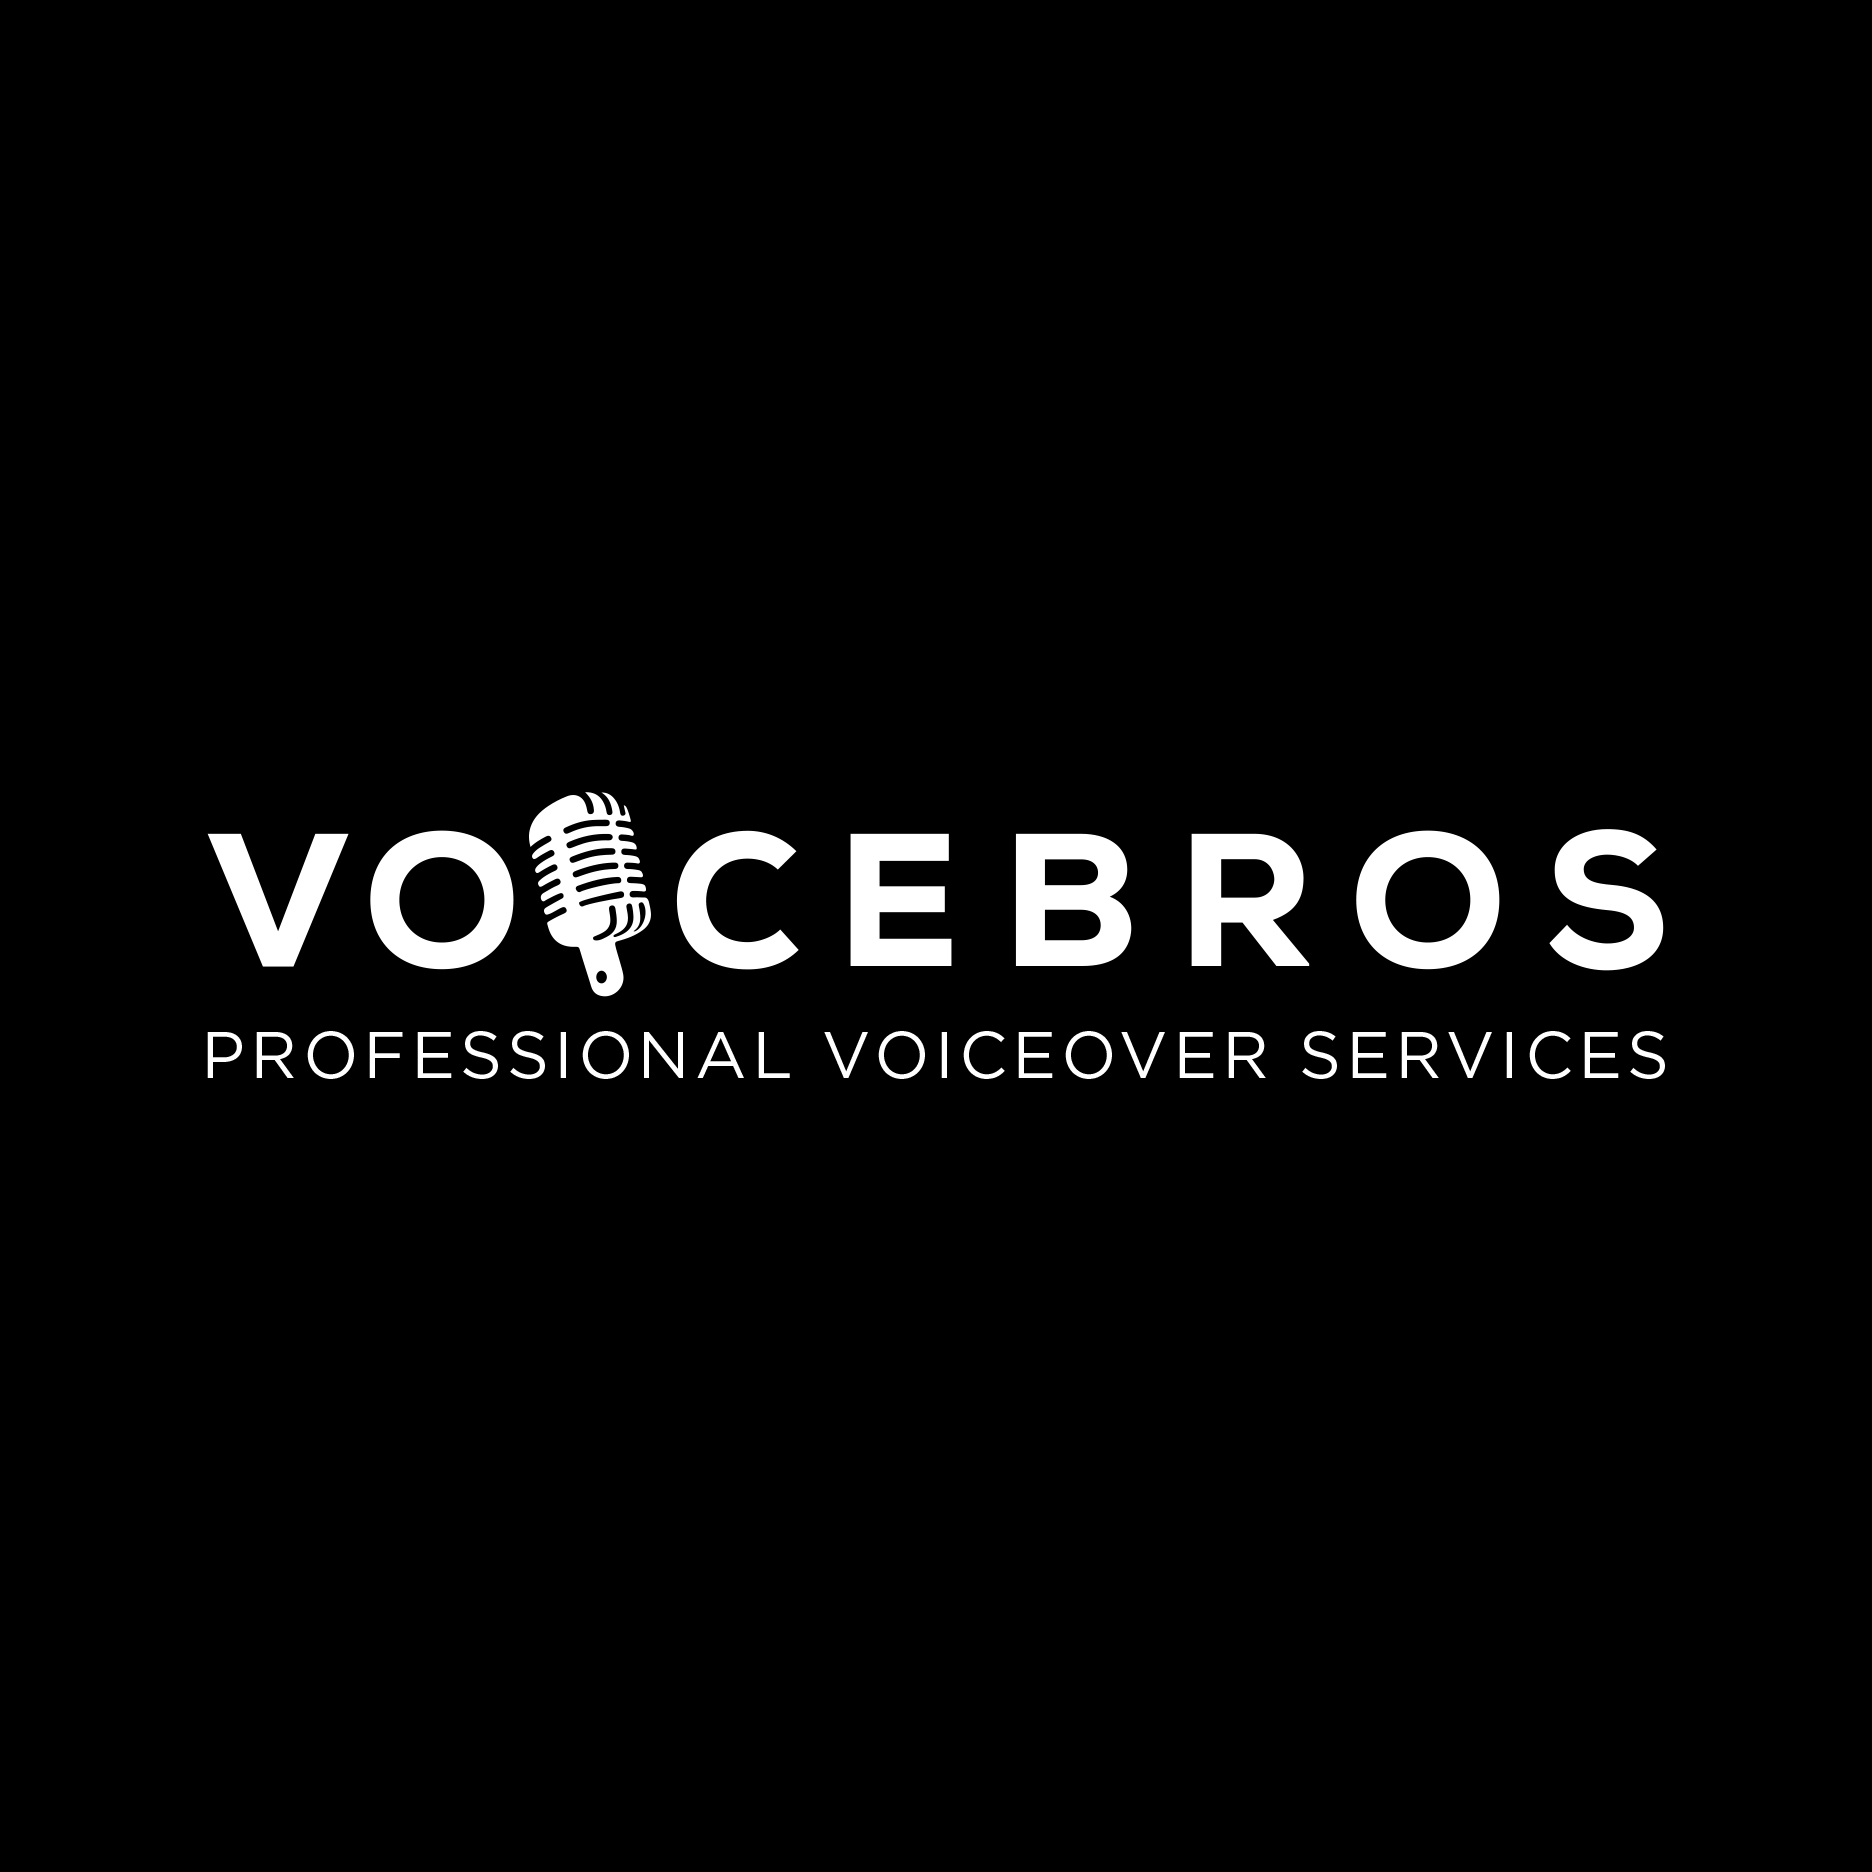 nitin verma is a voice over actor